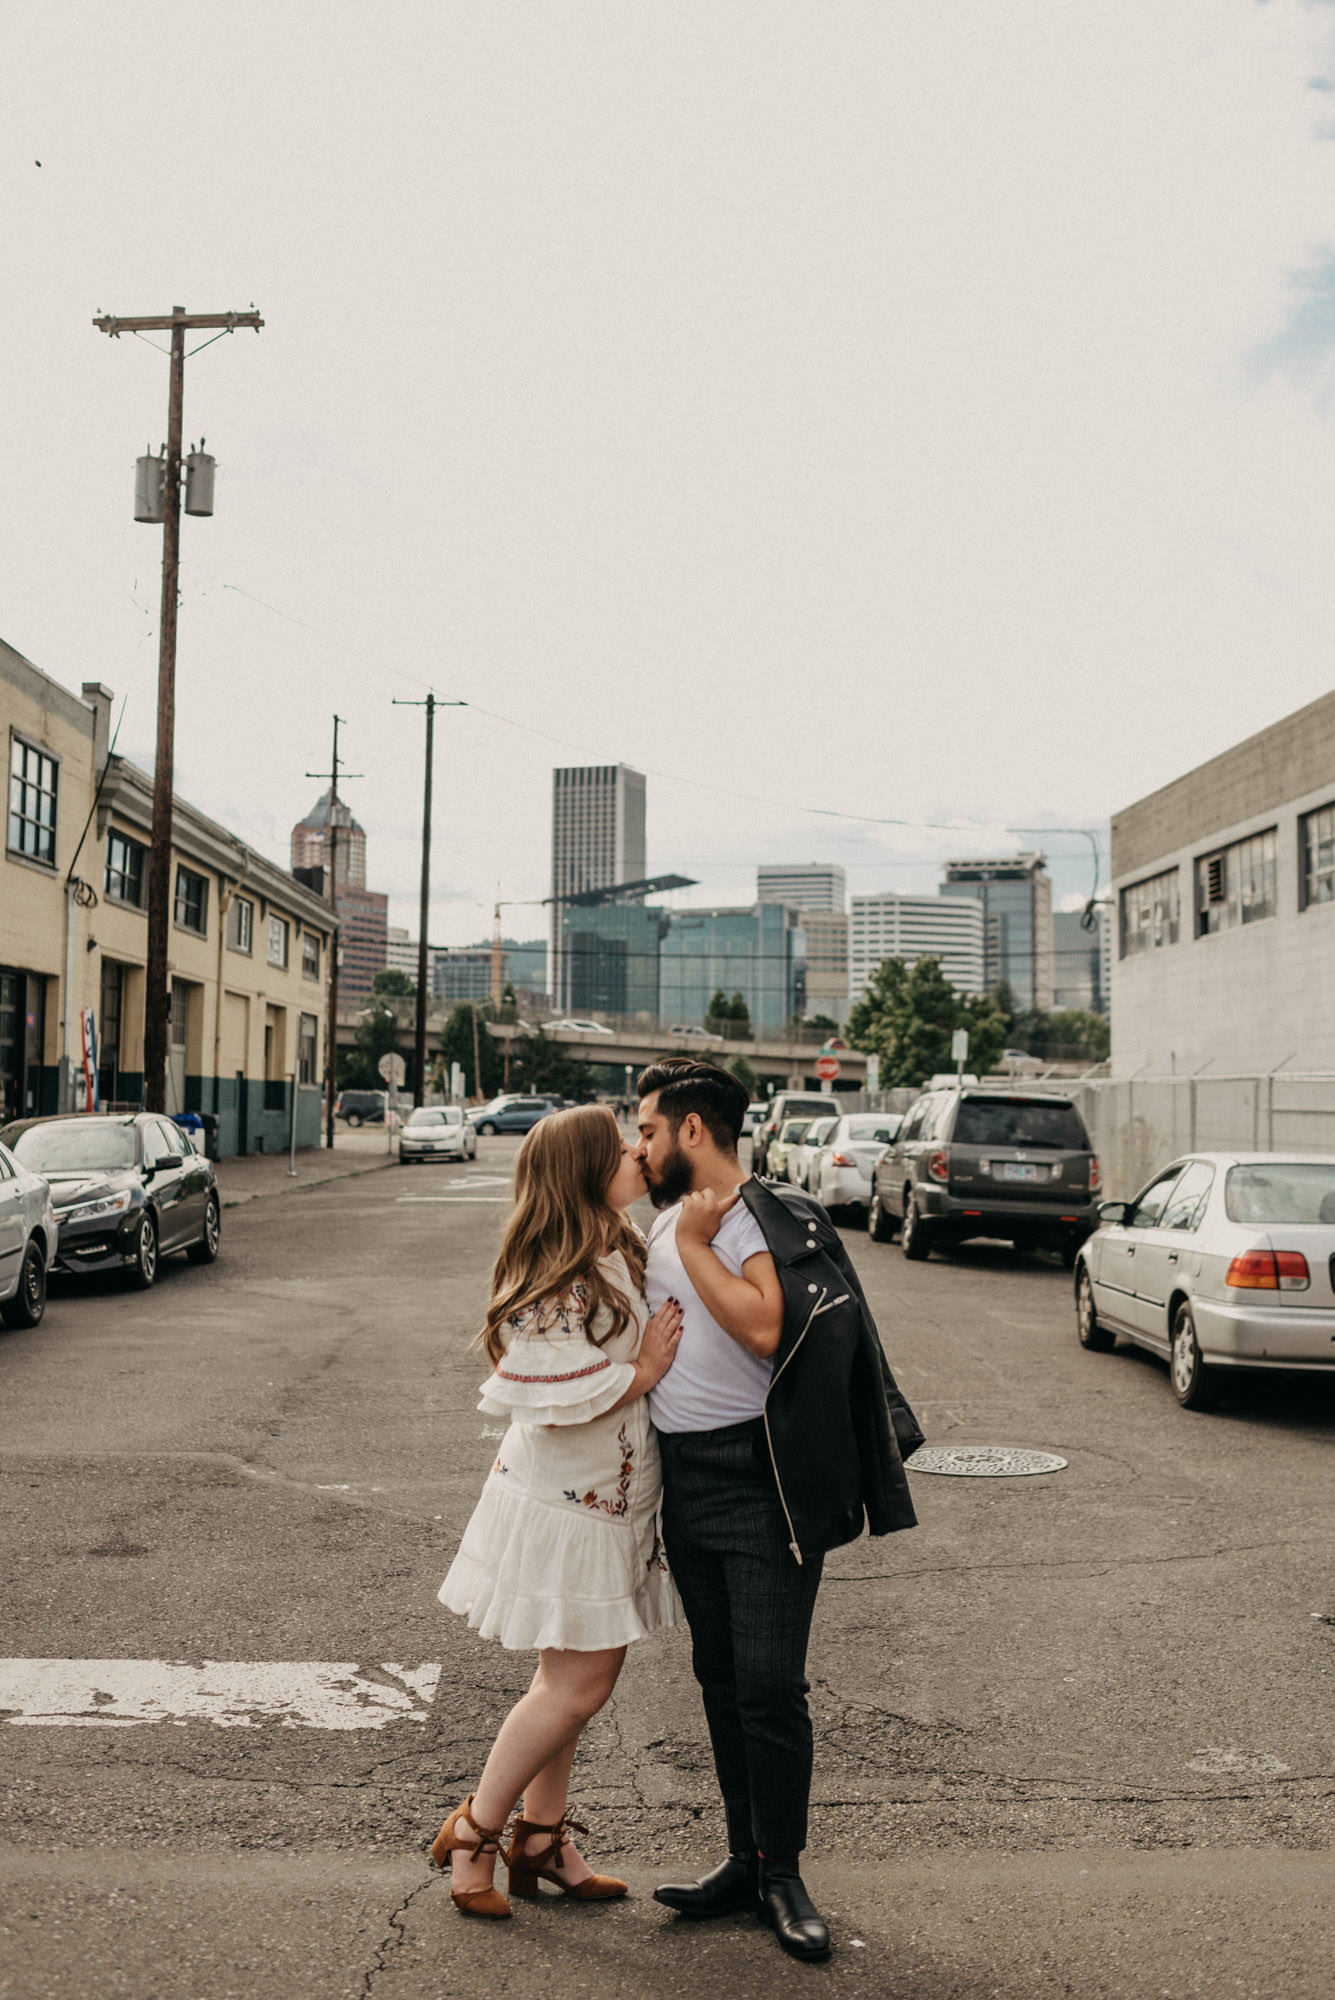 engagement-industrial-disctrict-cityscape-portland-downtown-4804.jpg